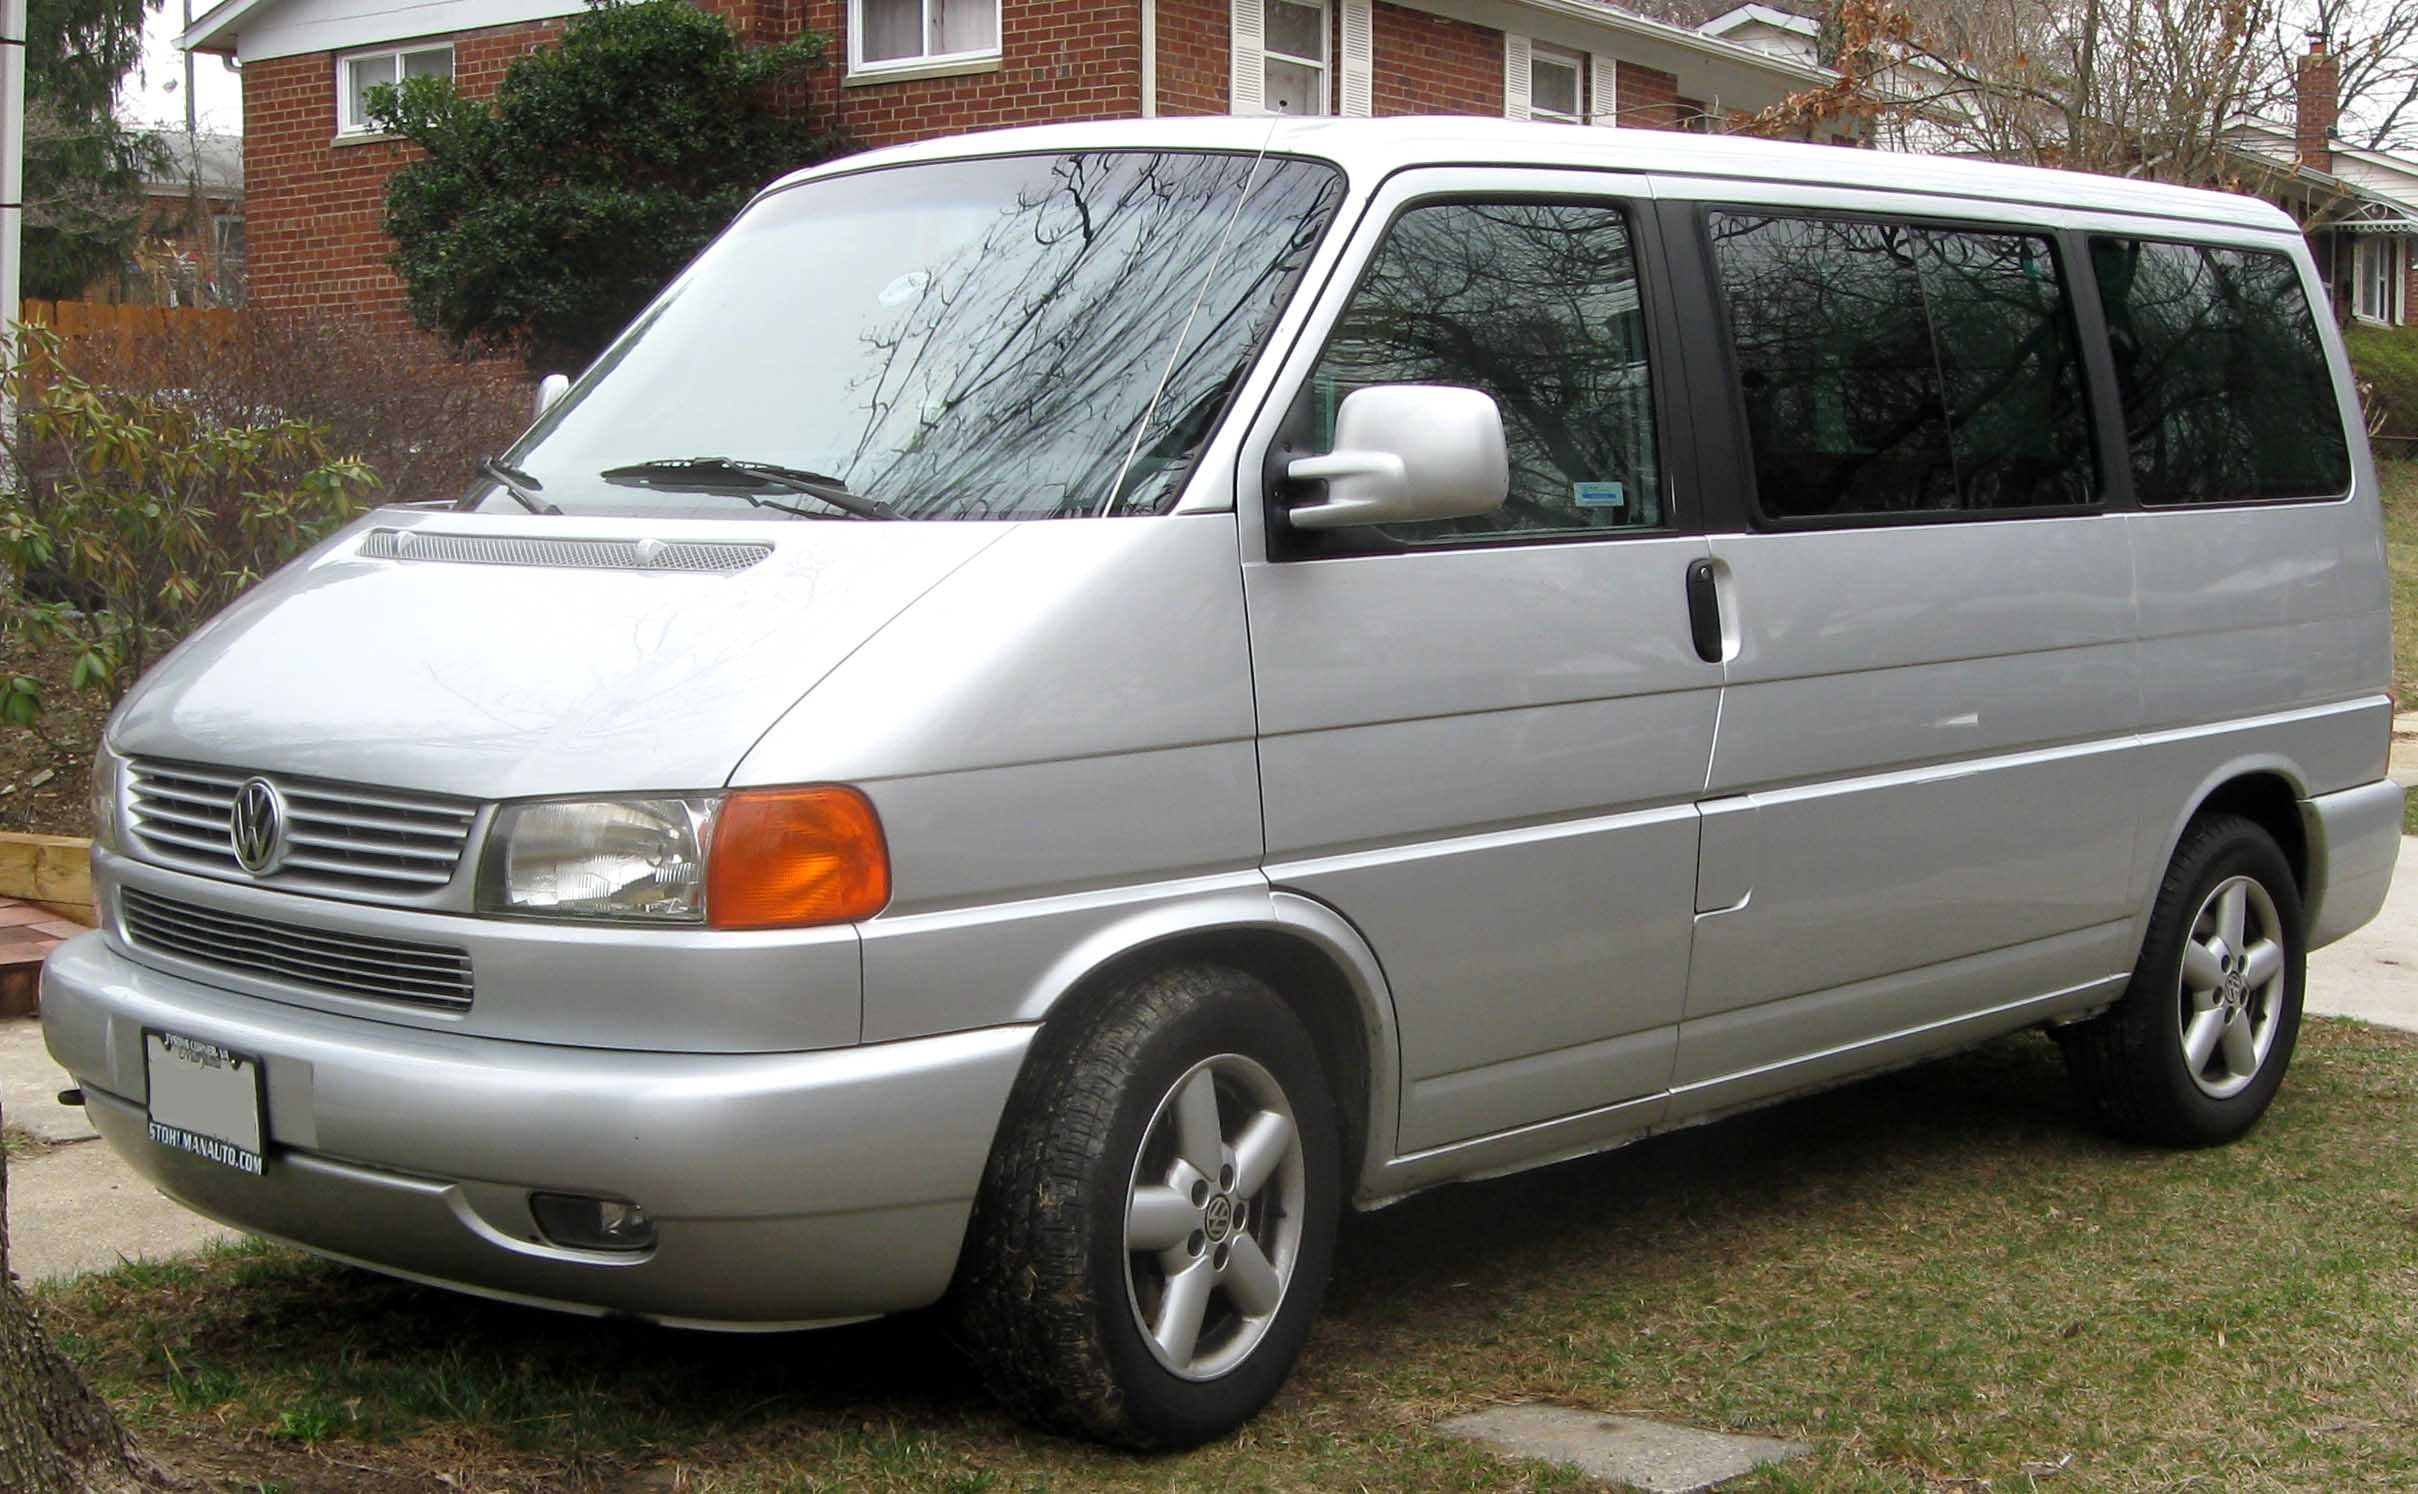 File:Volkswagen Eurovan.jpg - Wikipedia, the free encyclopedia